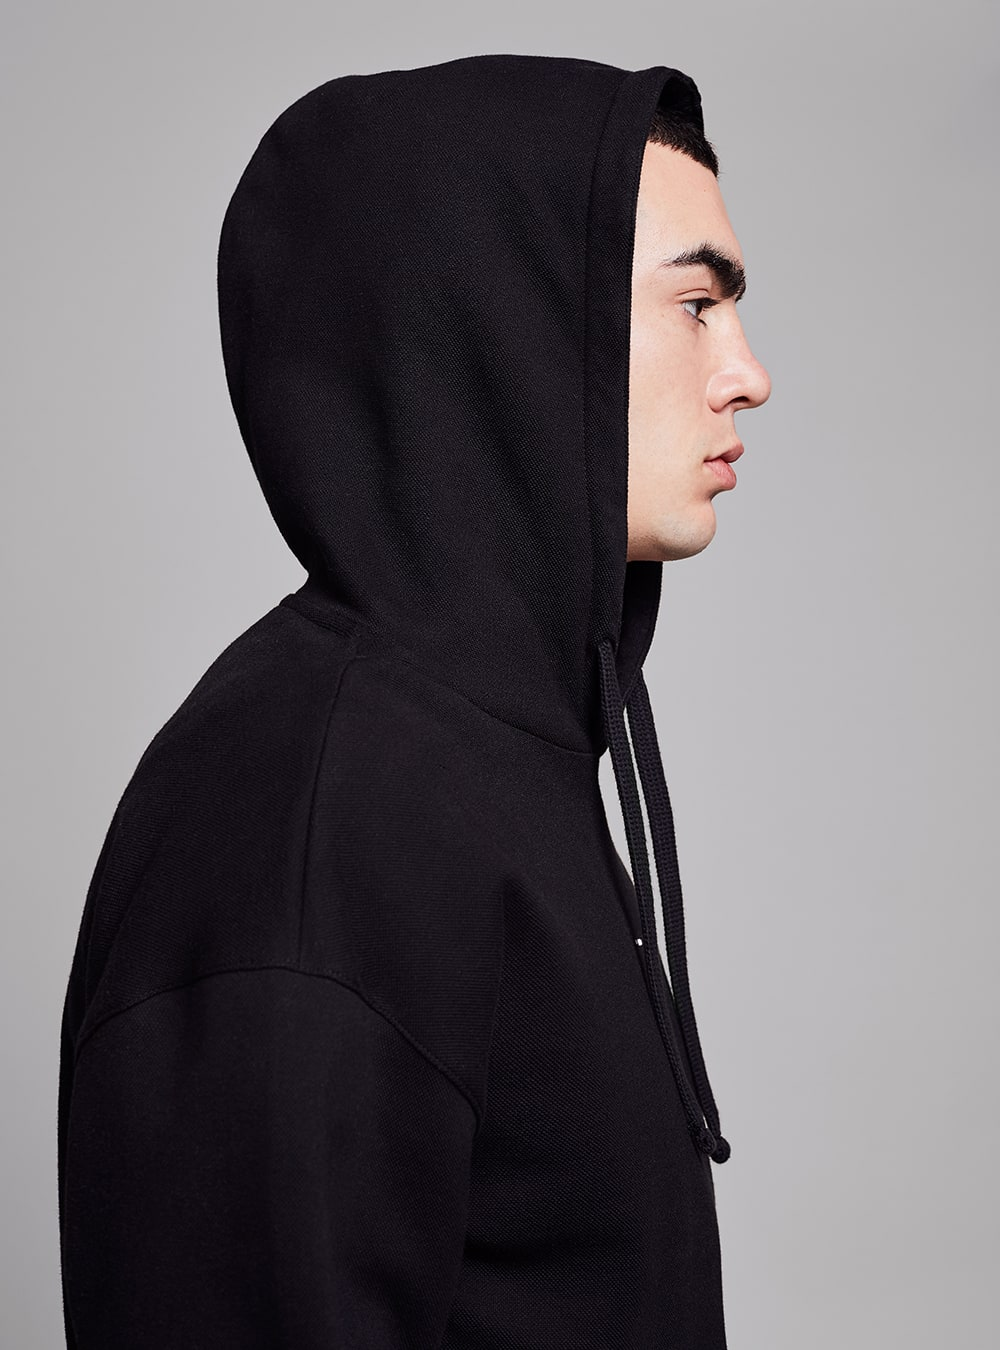 Piqué hoodie (black) in organic cotton, made in Portugal by wetheknot.